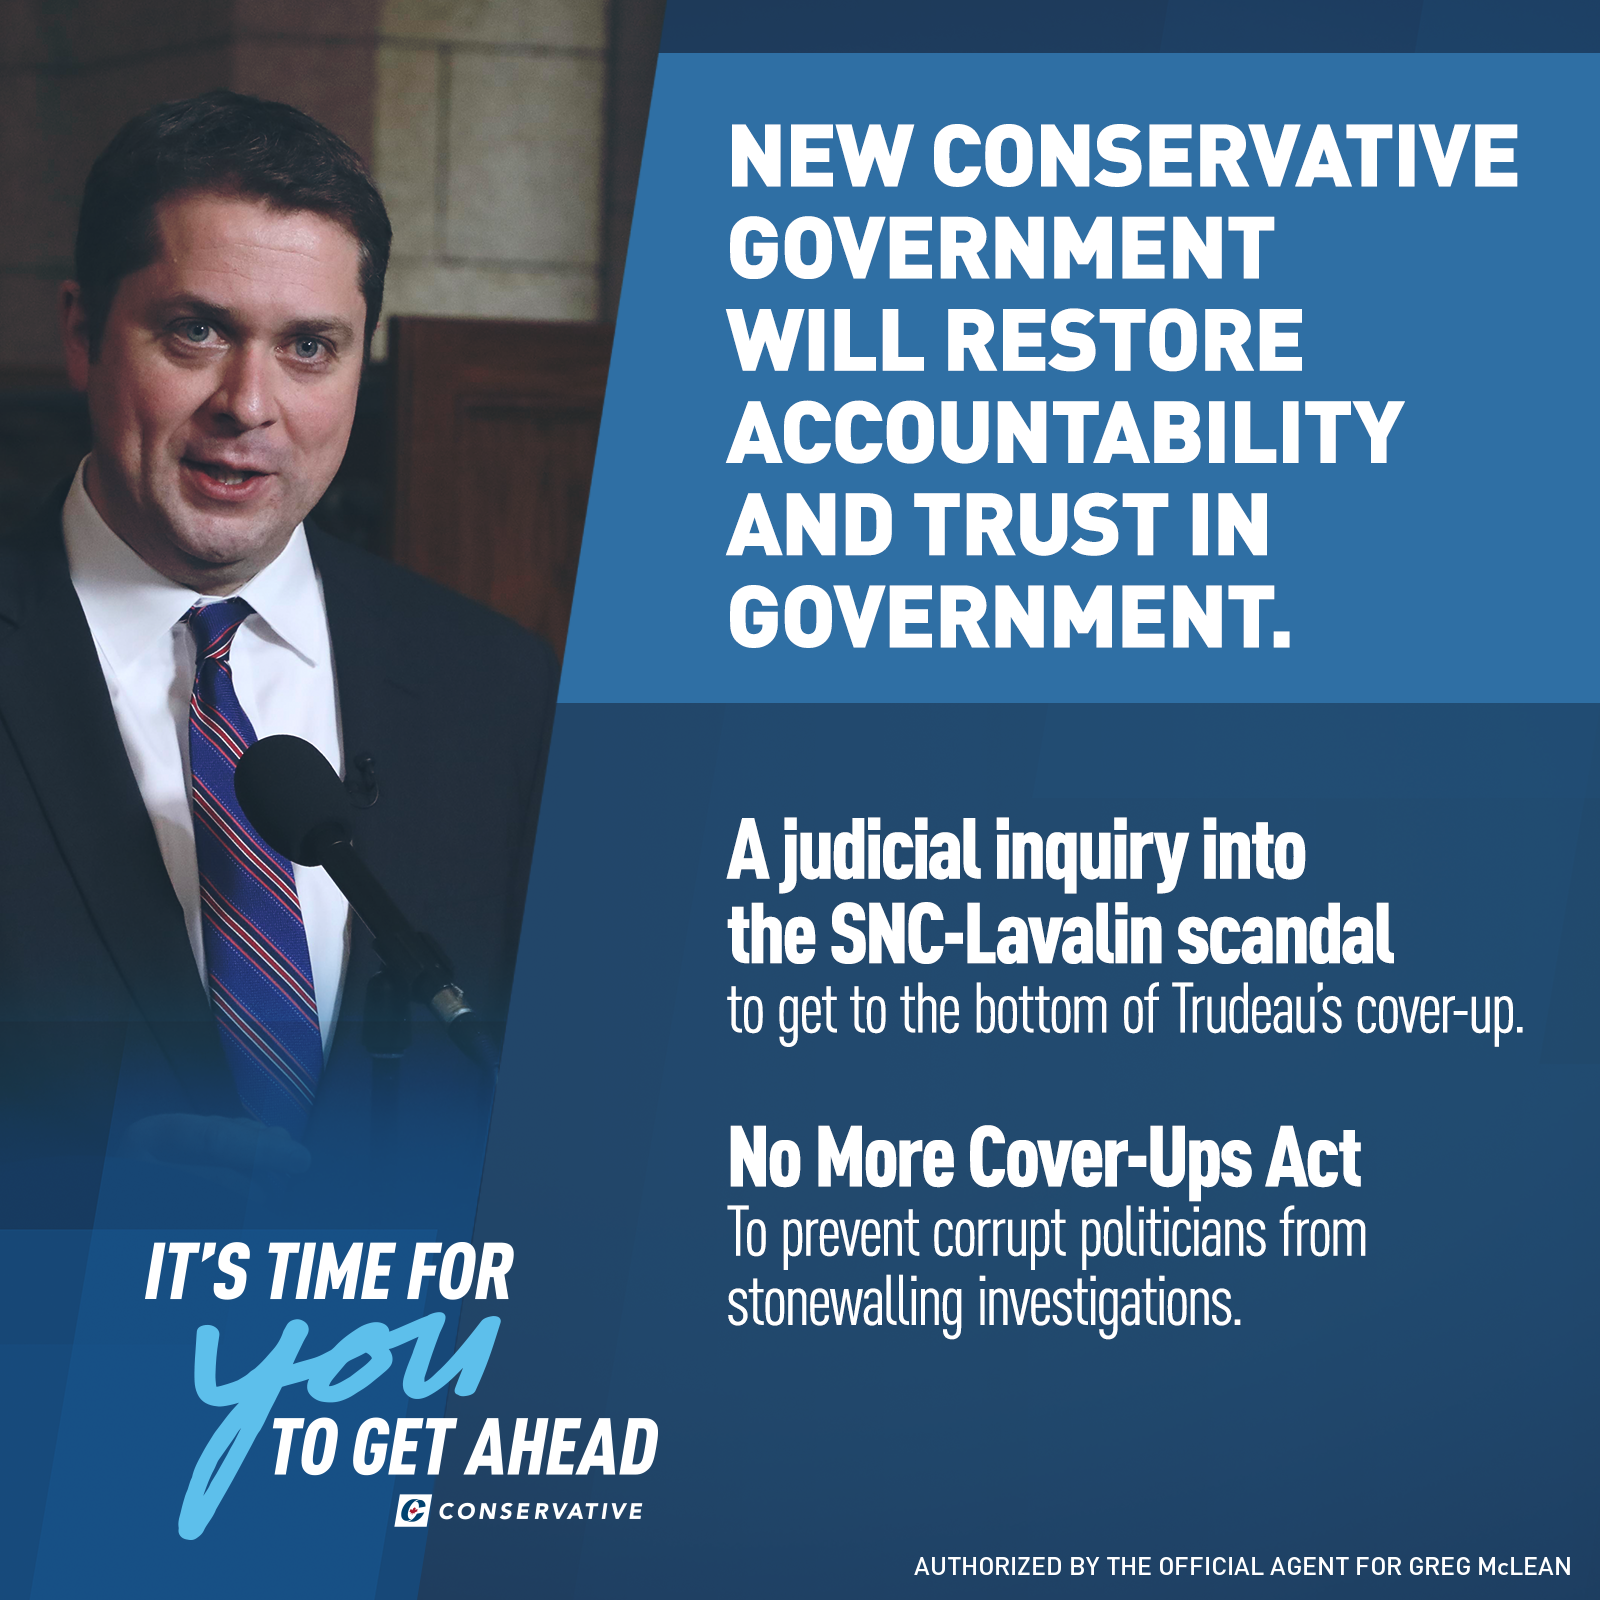 Ethics - · A new Conservative government will launch a judicial inquiry into the SNC-Lavalin corruption scandal to get the answers Canadians deserve.· A new Conservative government will introduce the No More Cover Ups Act to allow the RCMP to access information protected by cabinet confidence by making an application to the Supreme Court of Canada. This will prevent corrupt politicians from hiding behind cabinet confidence to escape police investigation.· We will Amend s. 39 of the Canada Evidence Act to allow the RCMP to make an application to challenge a certificate of Cabinet Confidence during criminal investigations, including those pertaining to the administration of justice. This will cover both obtaining records as well as conducting interviews.· Cabinet confidence is an important feature of cabinet governance, but it should not be absolute. In criminal investigations, this principle must be balanced against the need for police to fully investigate allegations of wrongdoing.